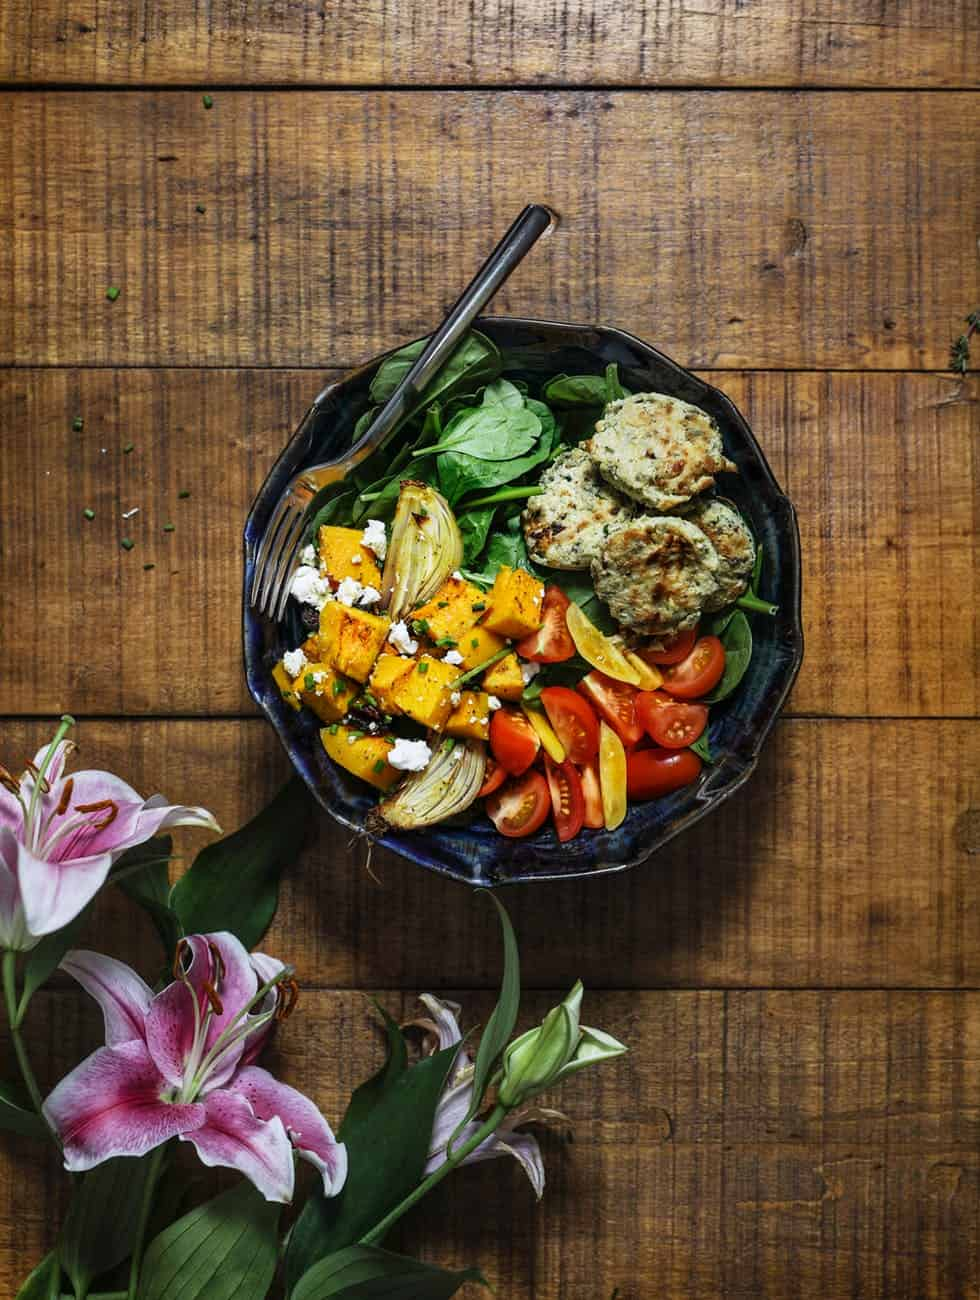 Know The Top 5 Reasons To Choose Vegan Food